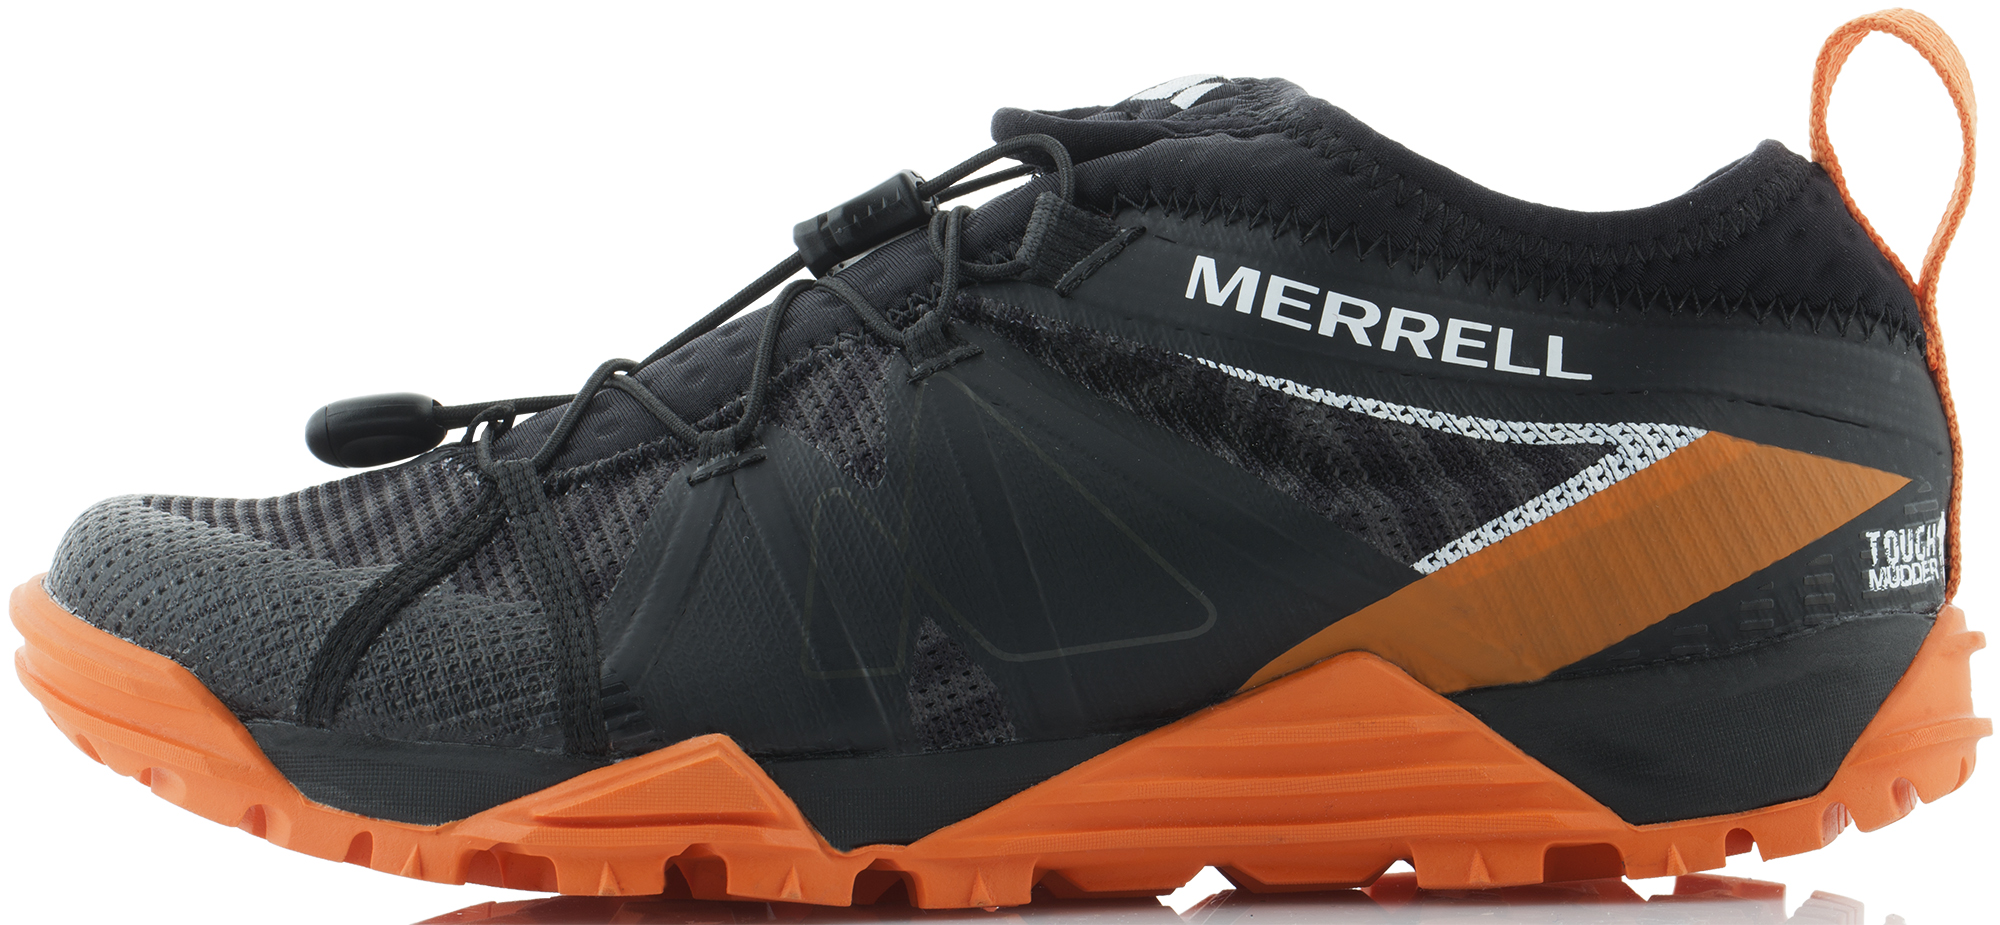 Merrell Кроссовки женские Merrell Avalaunch Tough Mudder merrell ice cap moc iii stretch купить